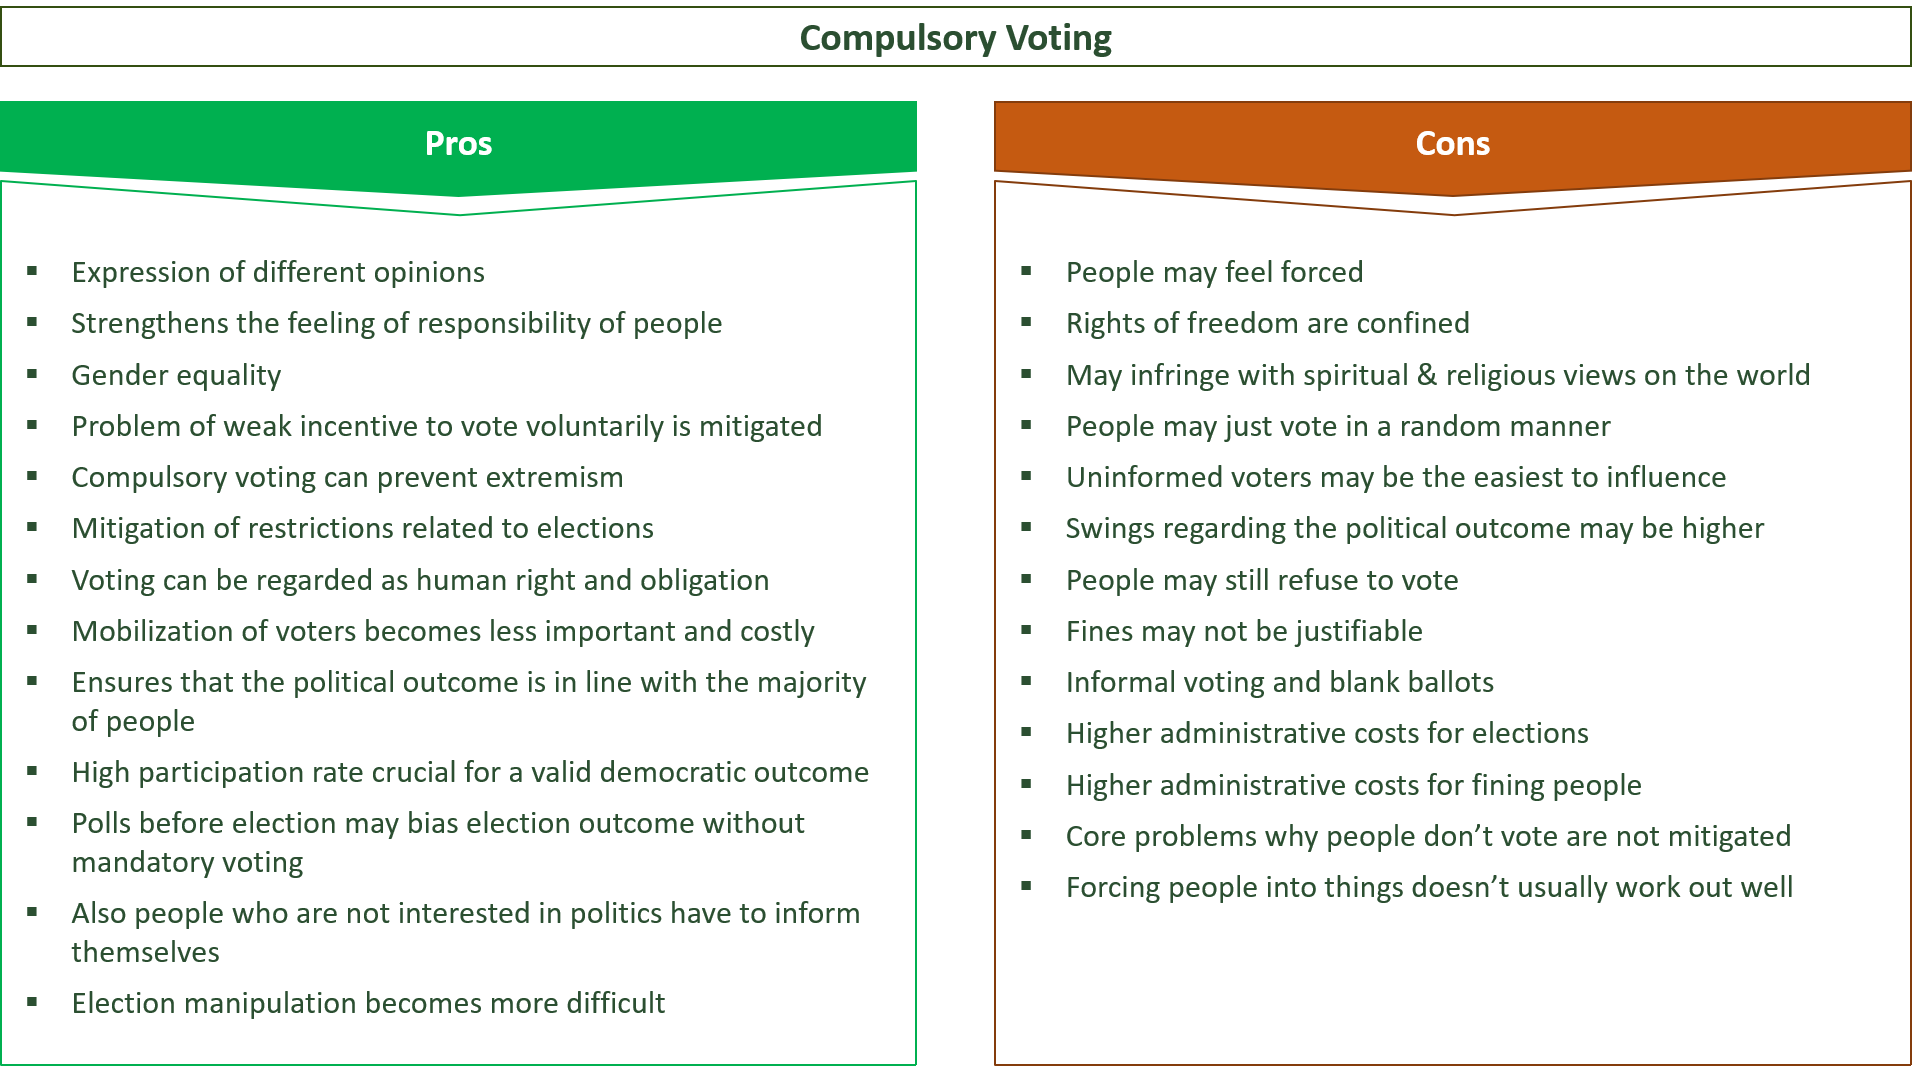 advantages and disadvantages of compulsory voting systems